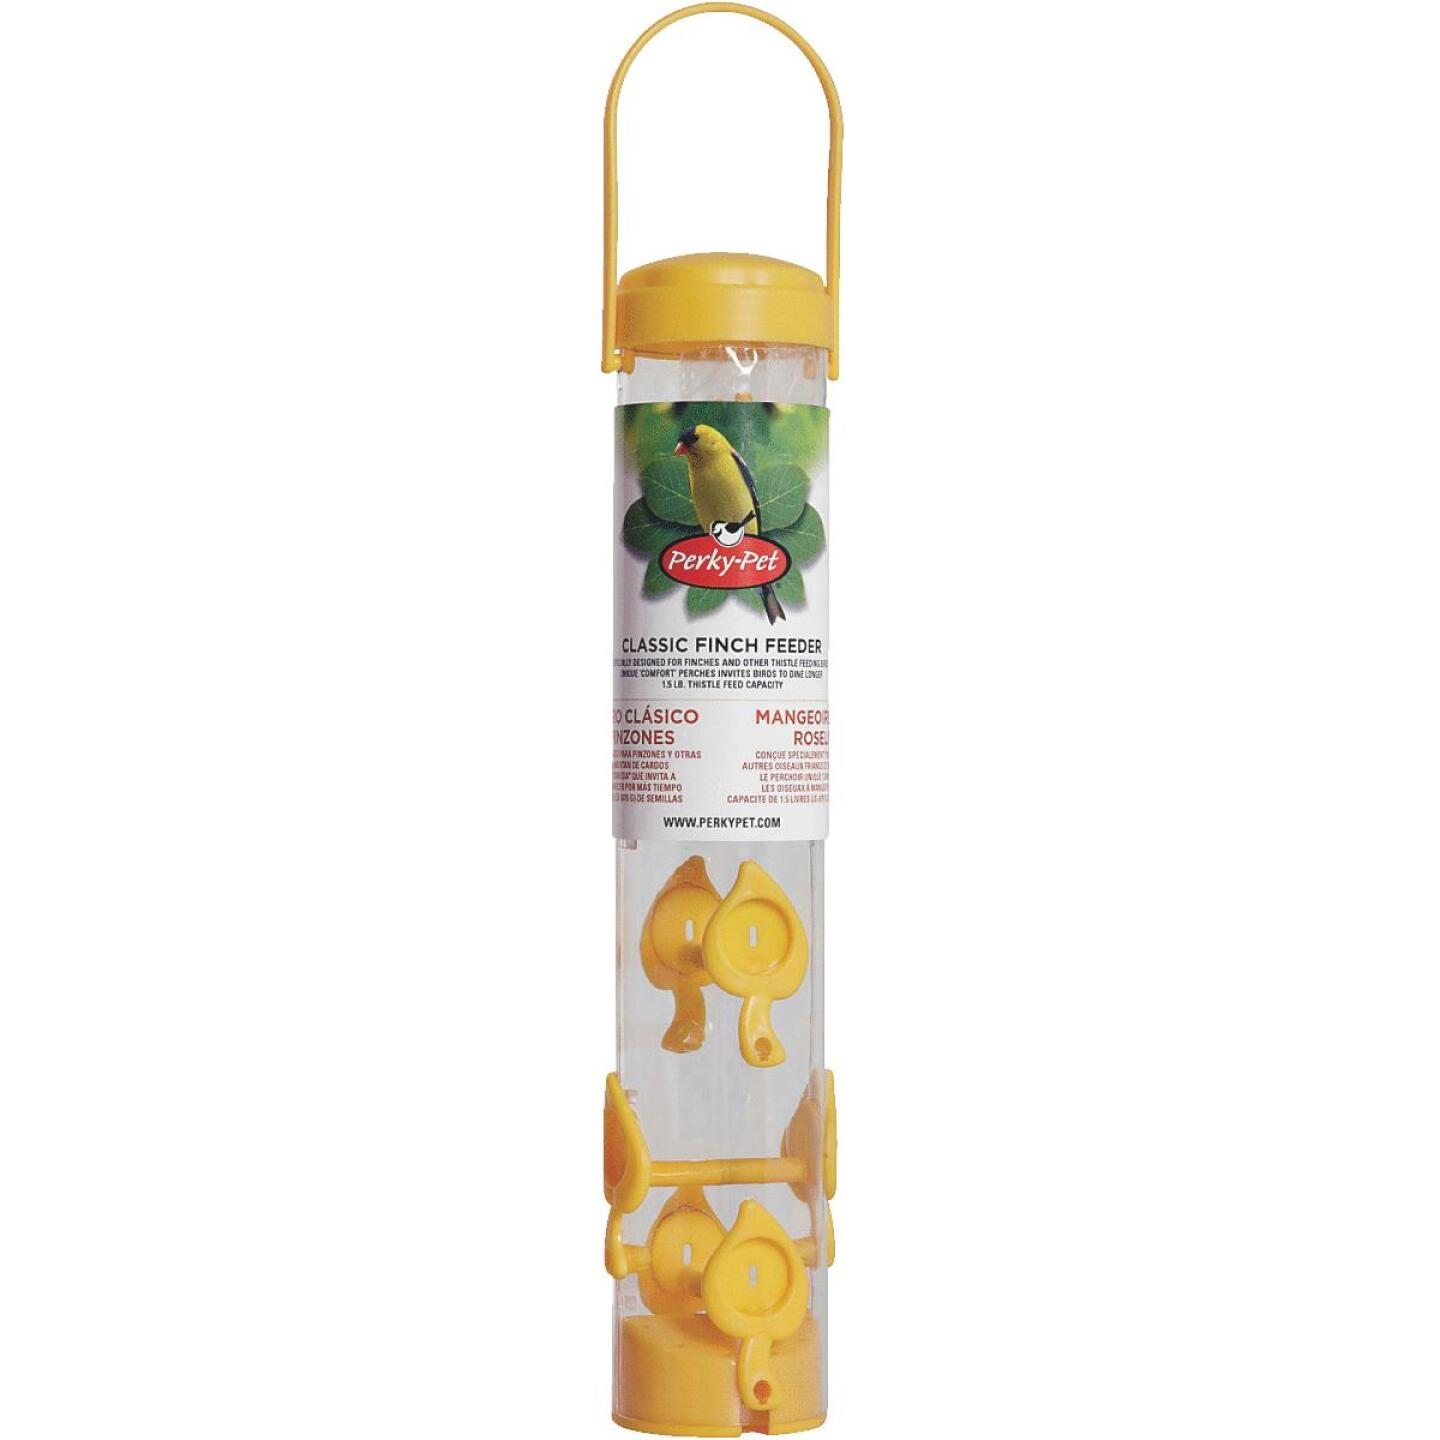 Perky-Pet Classic  14-1/2 In. 1.5 Lb. Capacity Yellow Nyjer Seed Finch Thistle Feeder Image 2